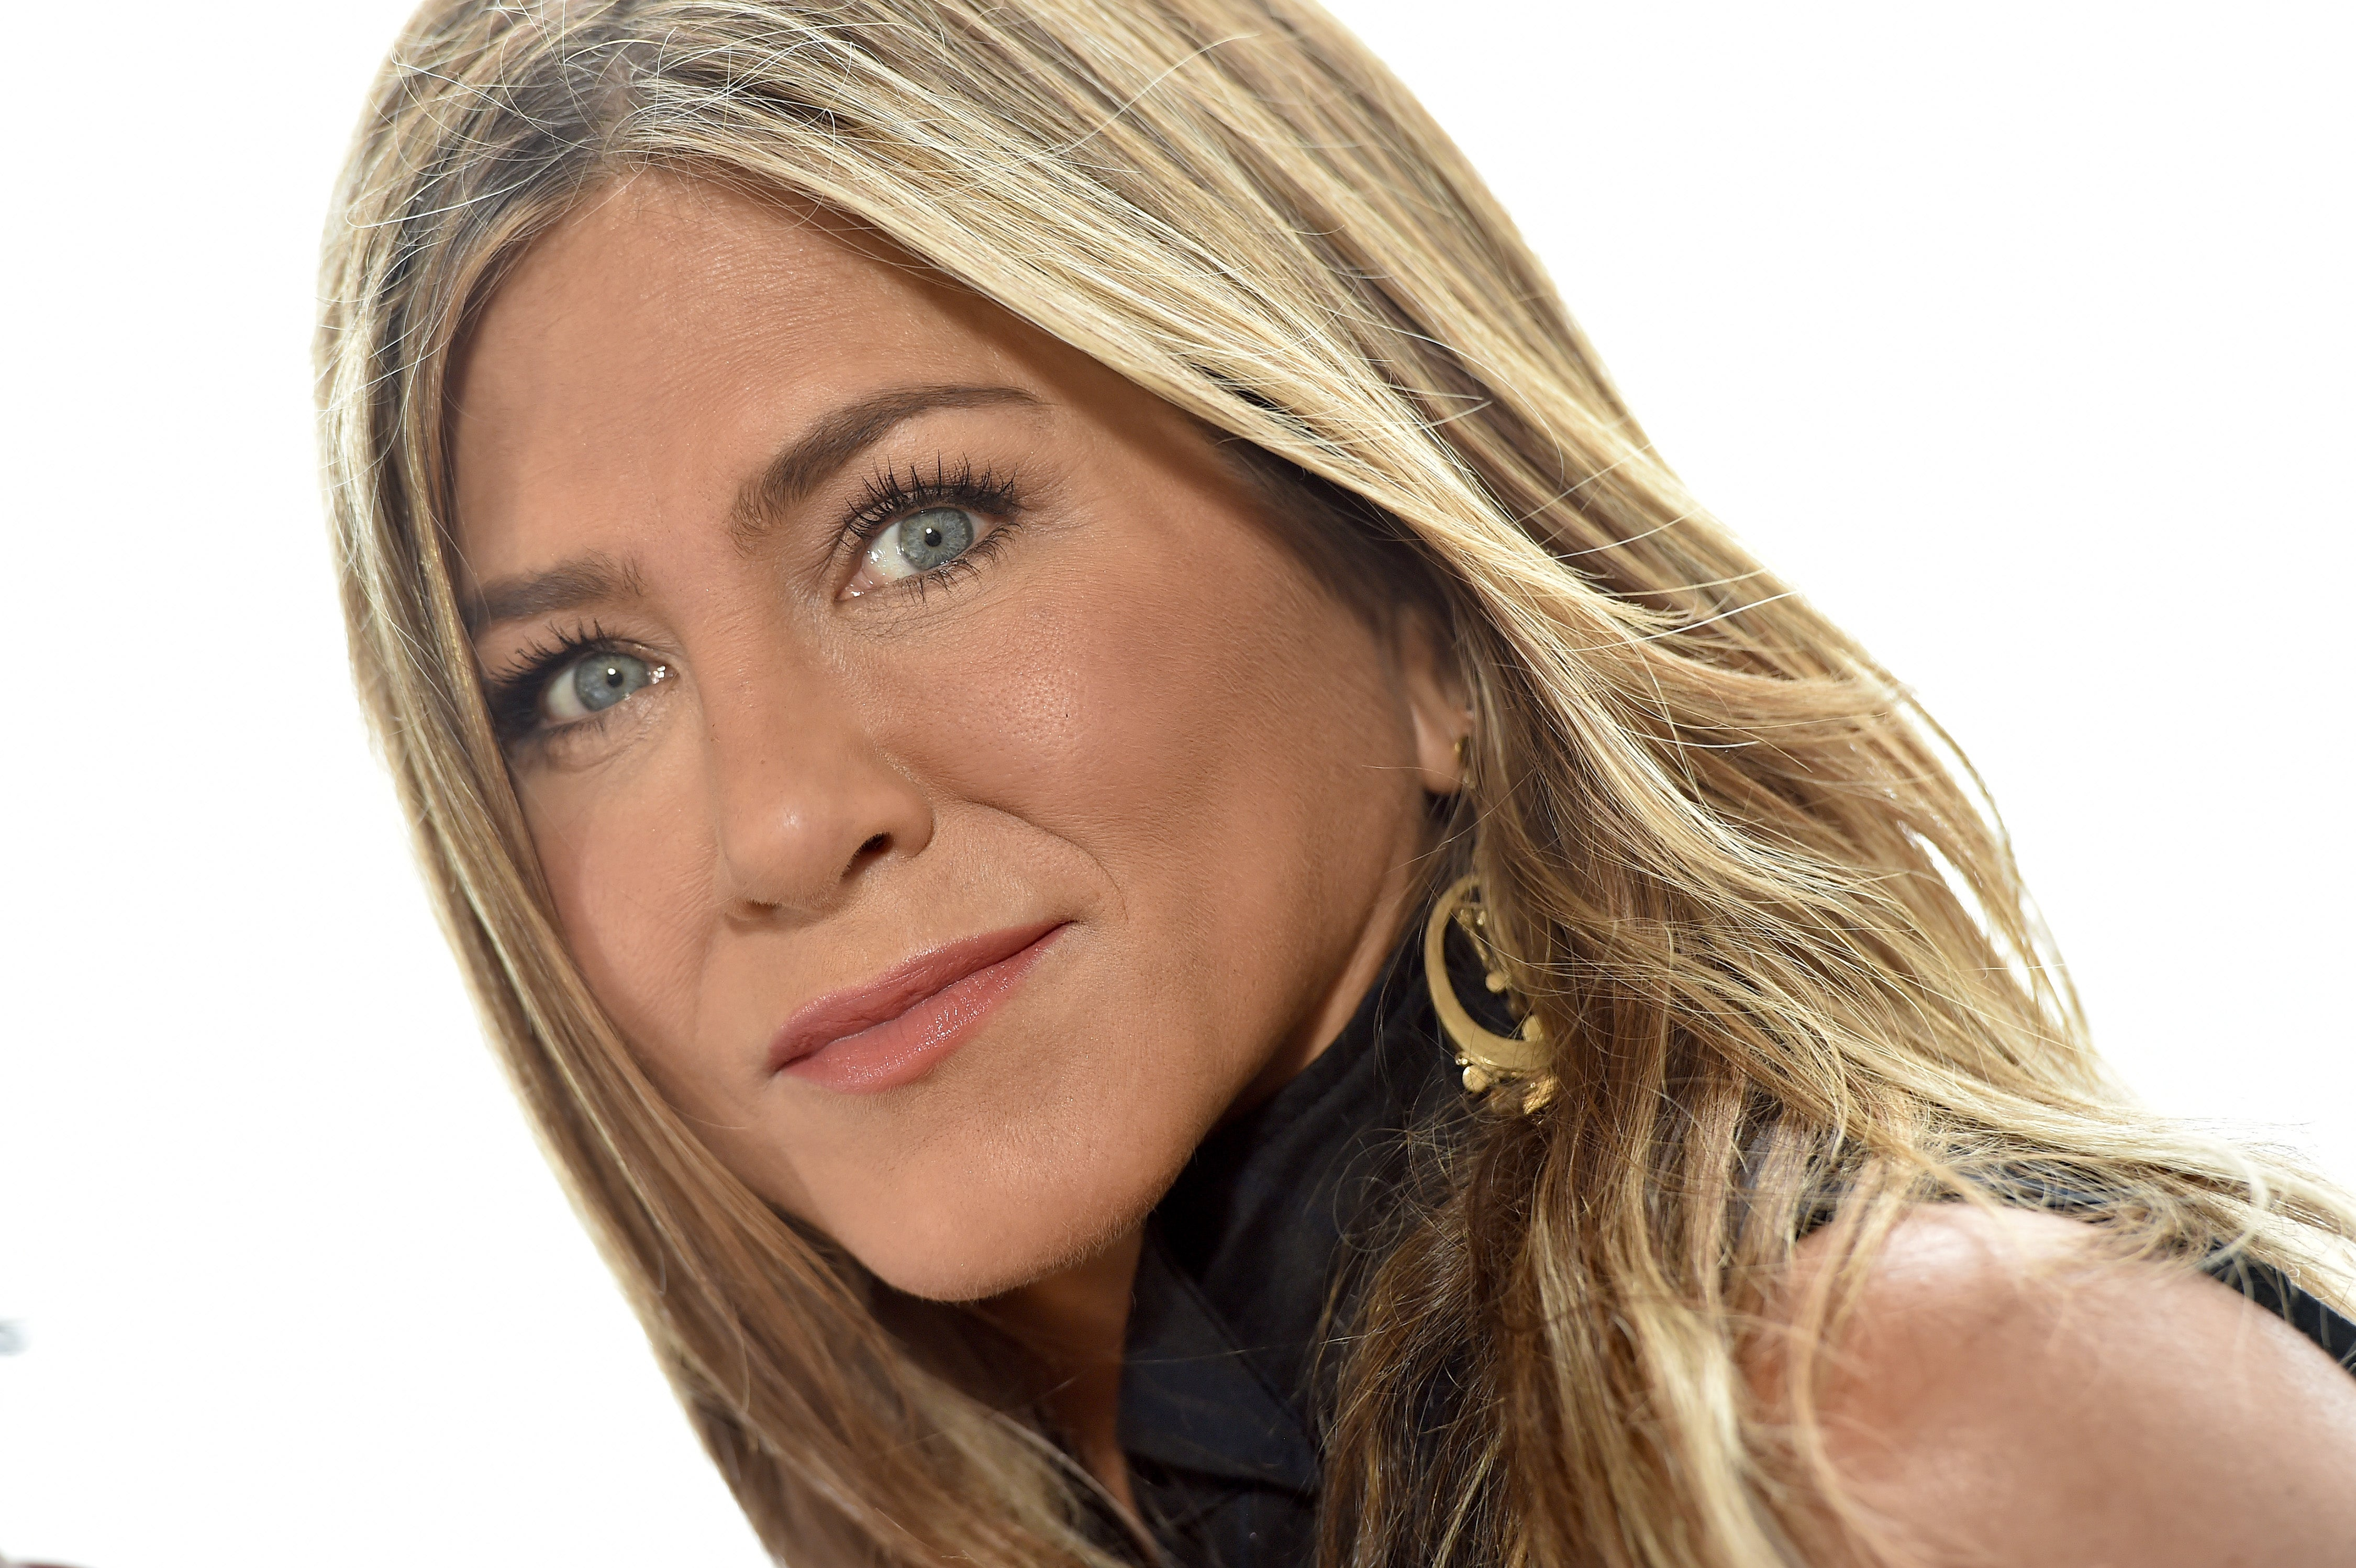 Jennifer Aniston Jokes She's 'Trying to Build Content,' Cuddles Up to Dave Matthews on Instagram